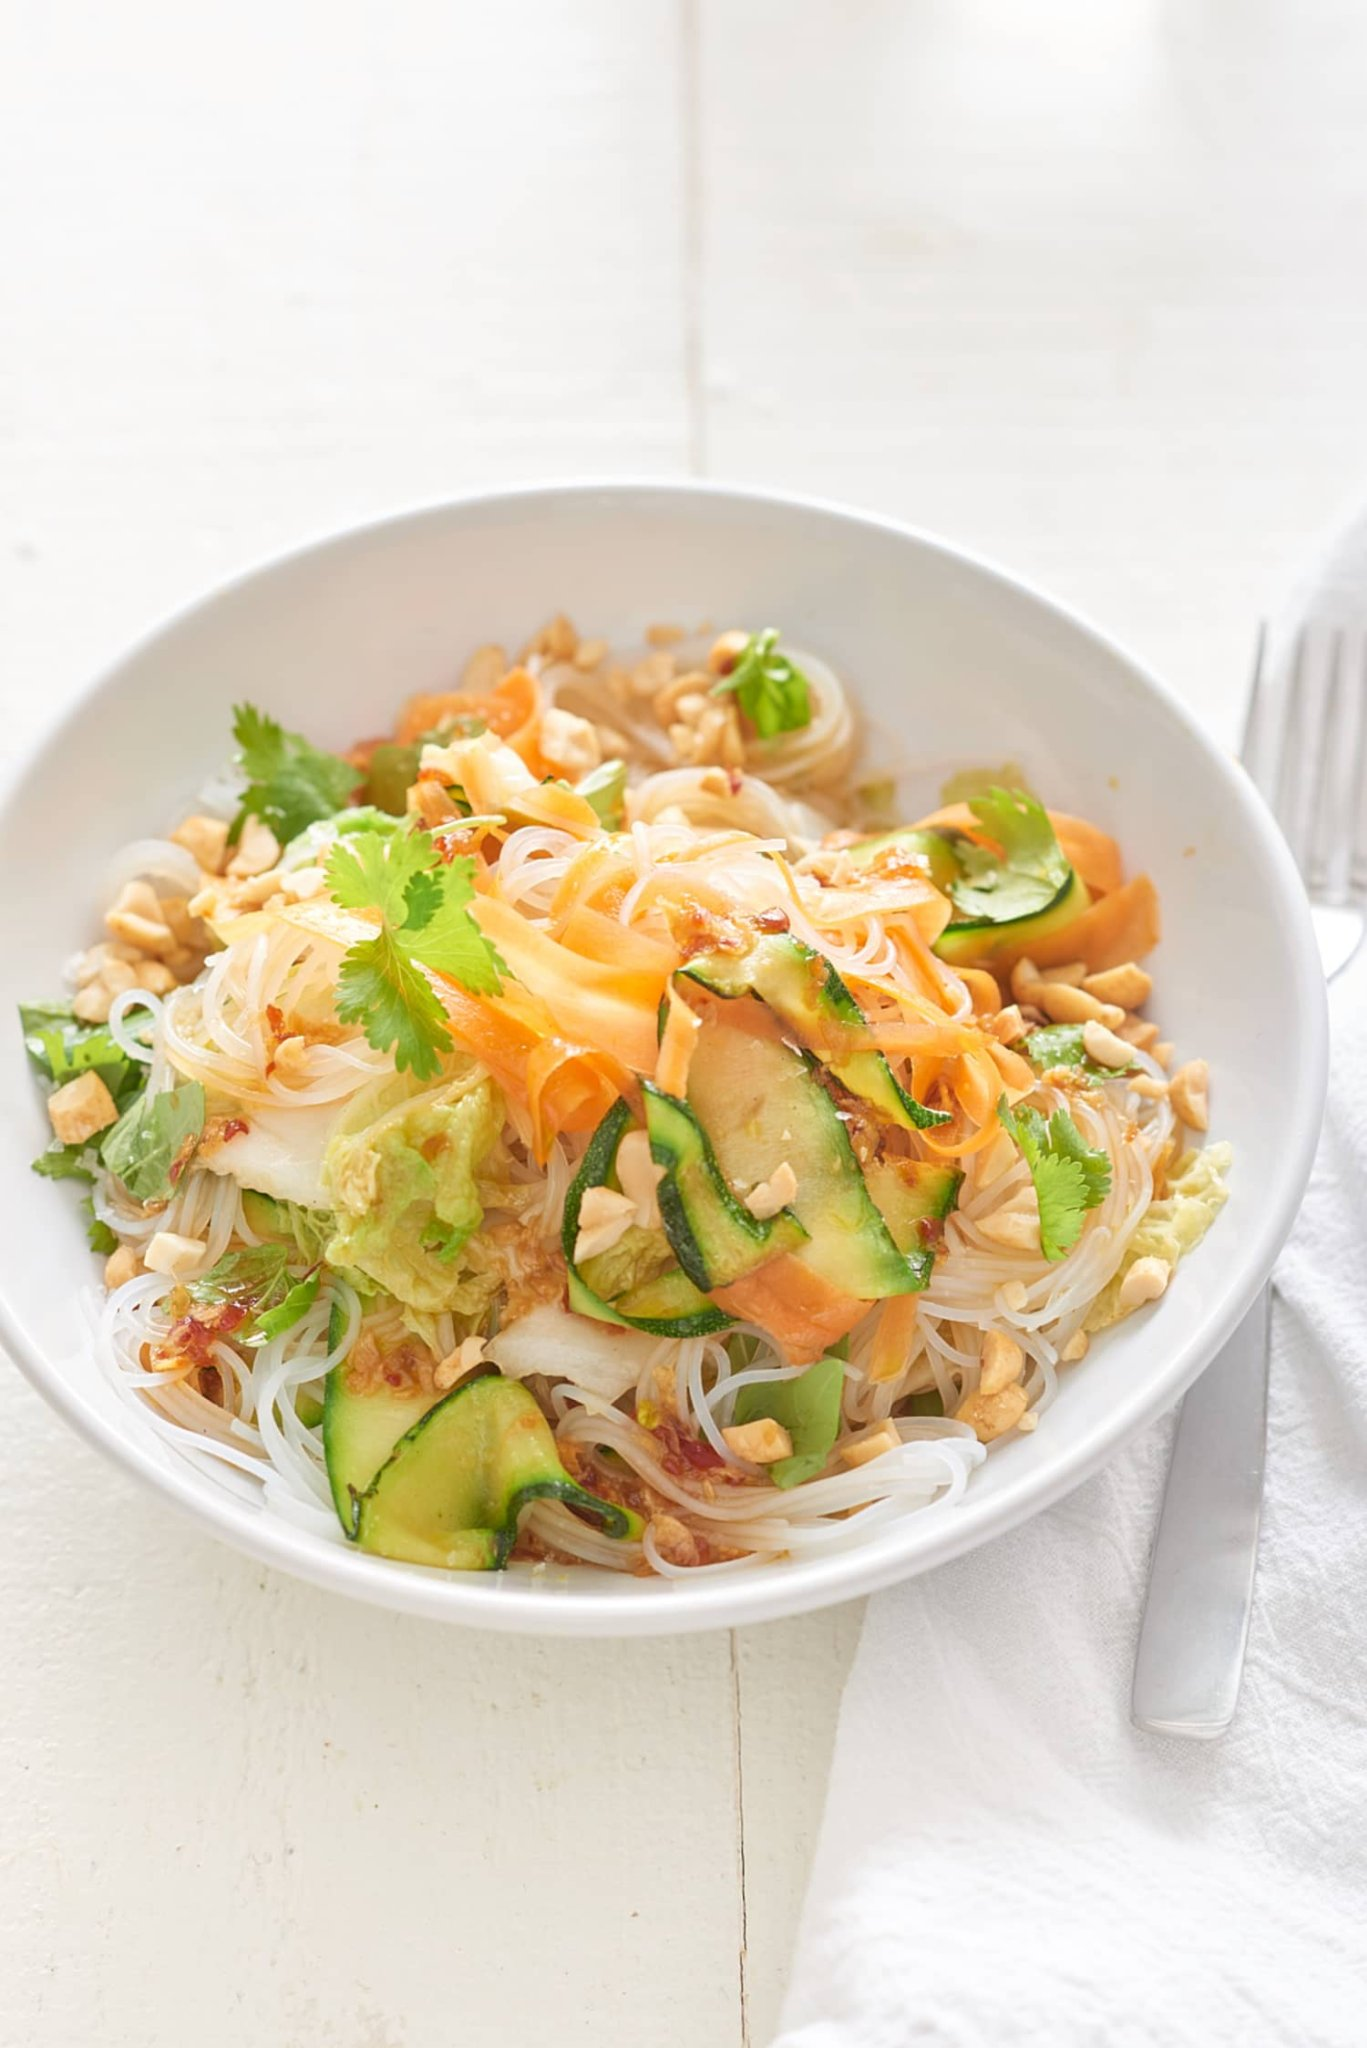 These Cold Veggie Noodle Bowls Are Perfect for When It's Too Hot to Cook